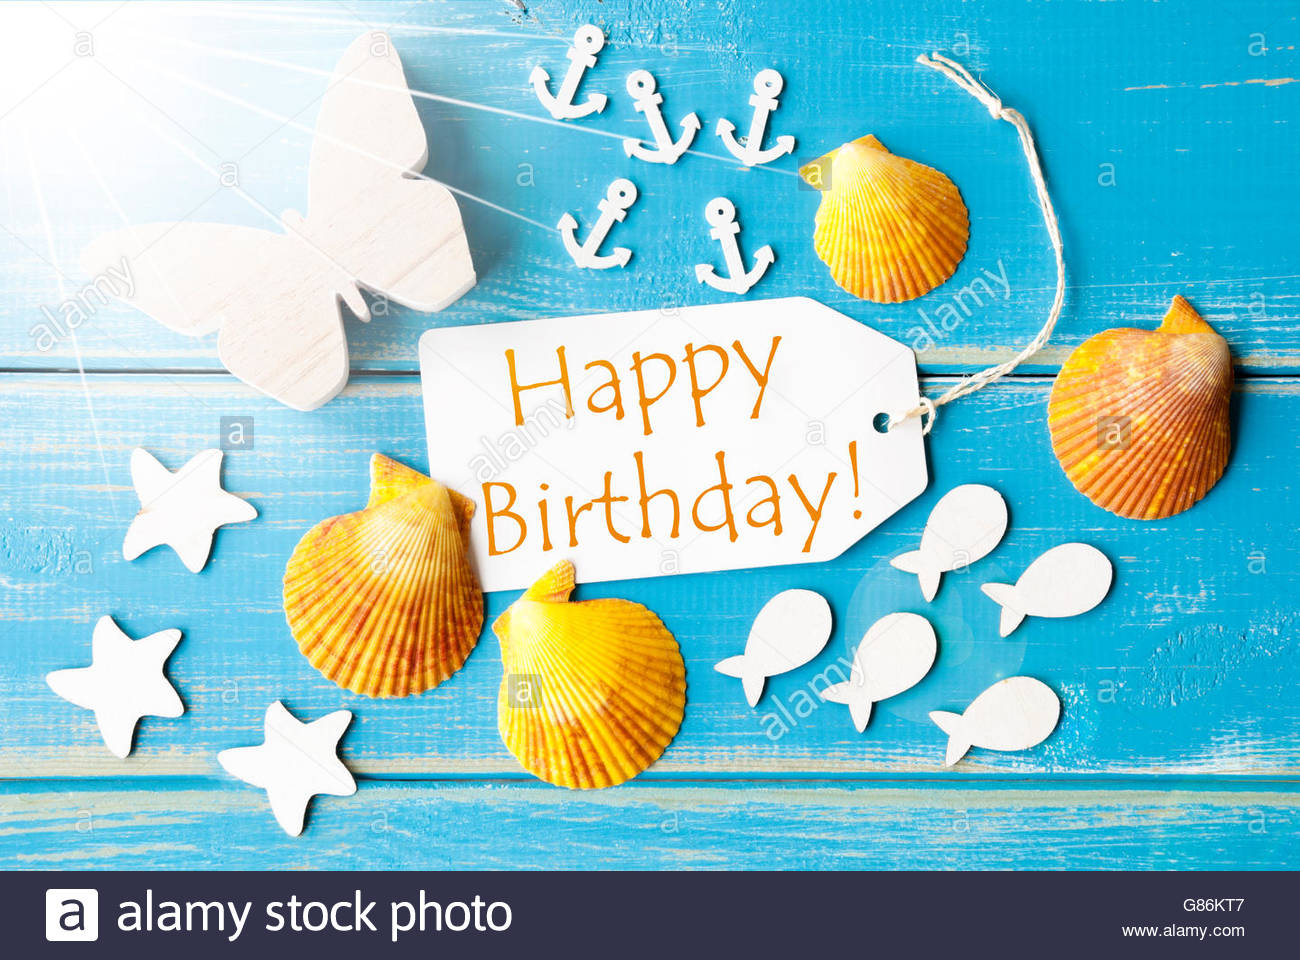 happy birthday summer images ; sunny-summer-greeting-card-with-text-happy-birthday-G86KT7